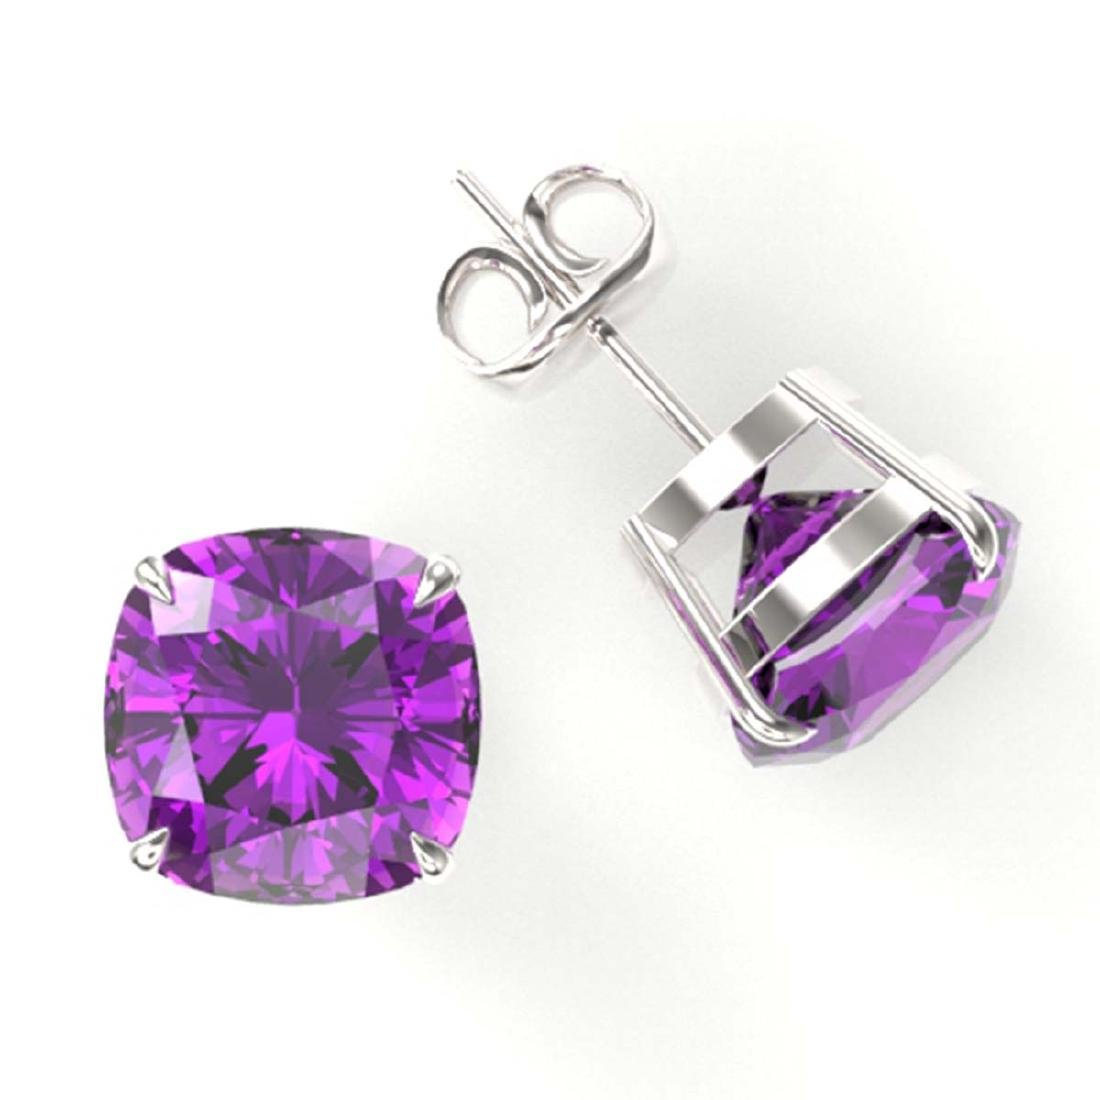 12 ctw Cushion Cut Amethyst Stud Earrings 18K White - 2